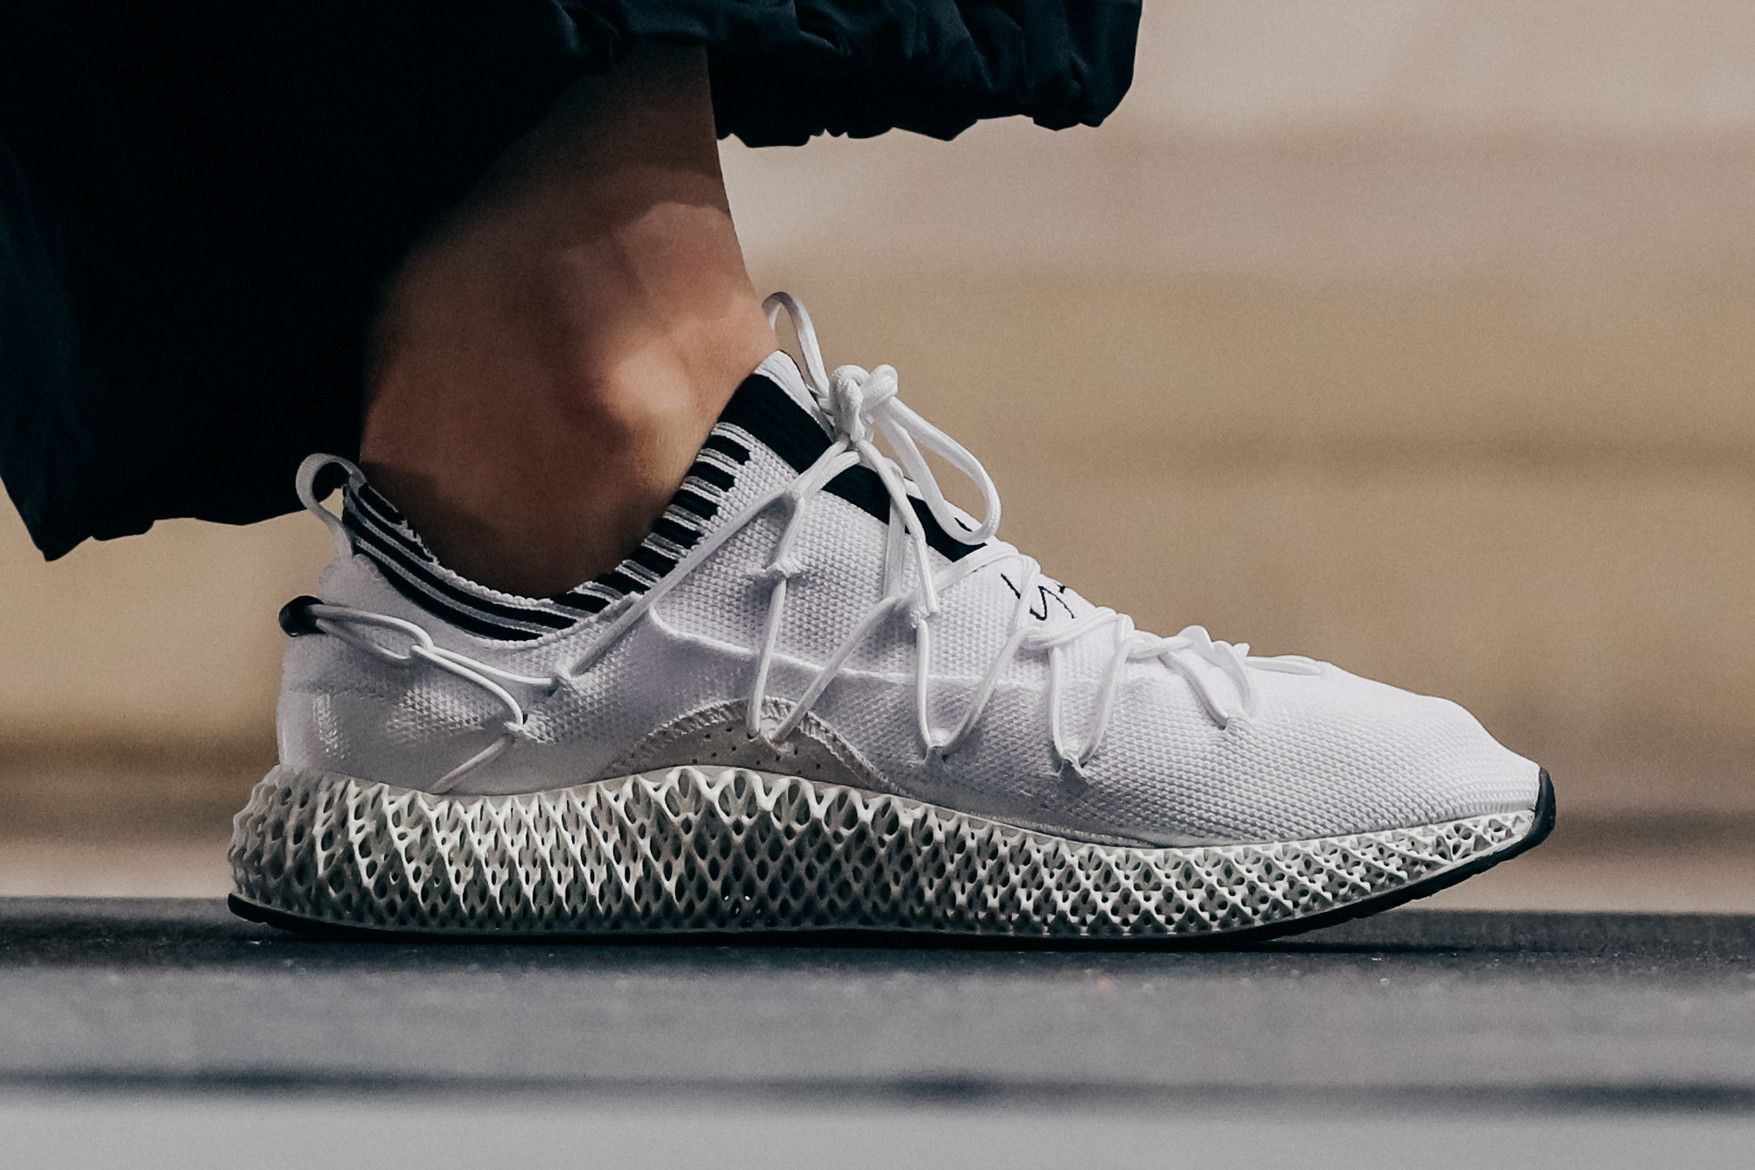 check out 7e626 0dbed 搶先預覽 Y-3 2019 春夏鞋履新作 Cool Adidas Shoes, Air